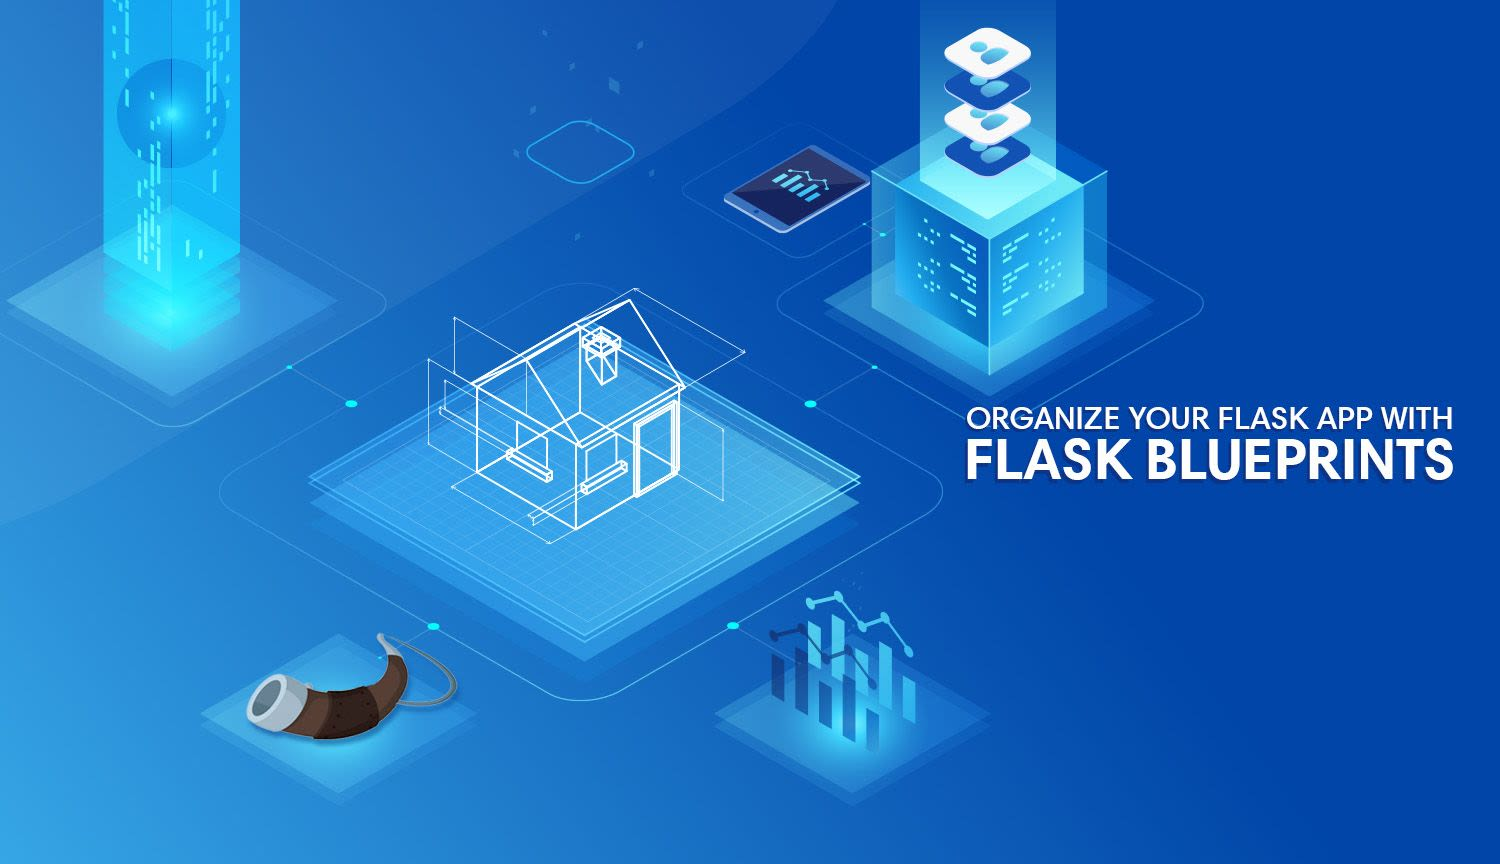 Organizing Flask with Blueprints | Hackers and Slackers